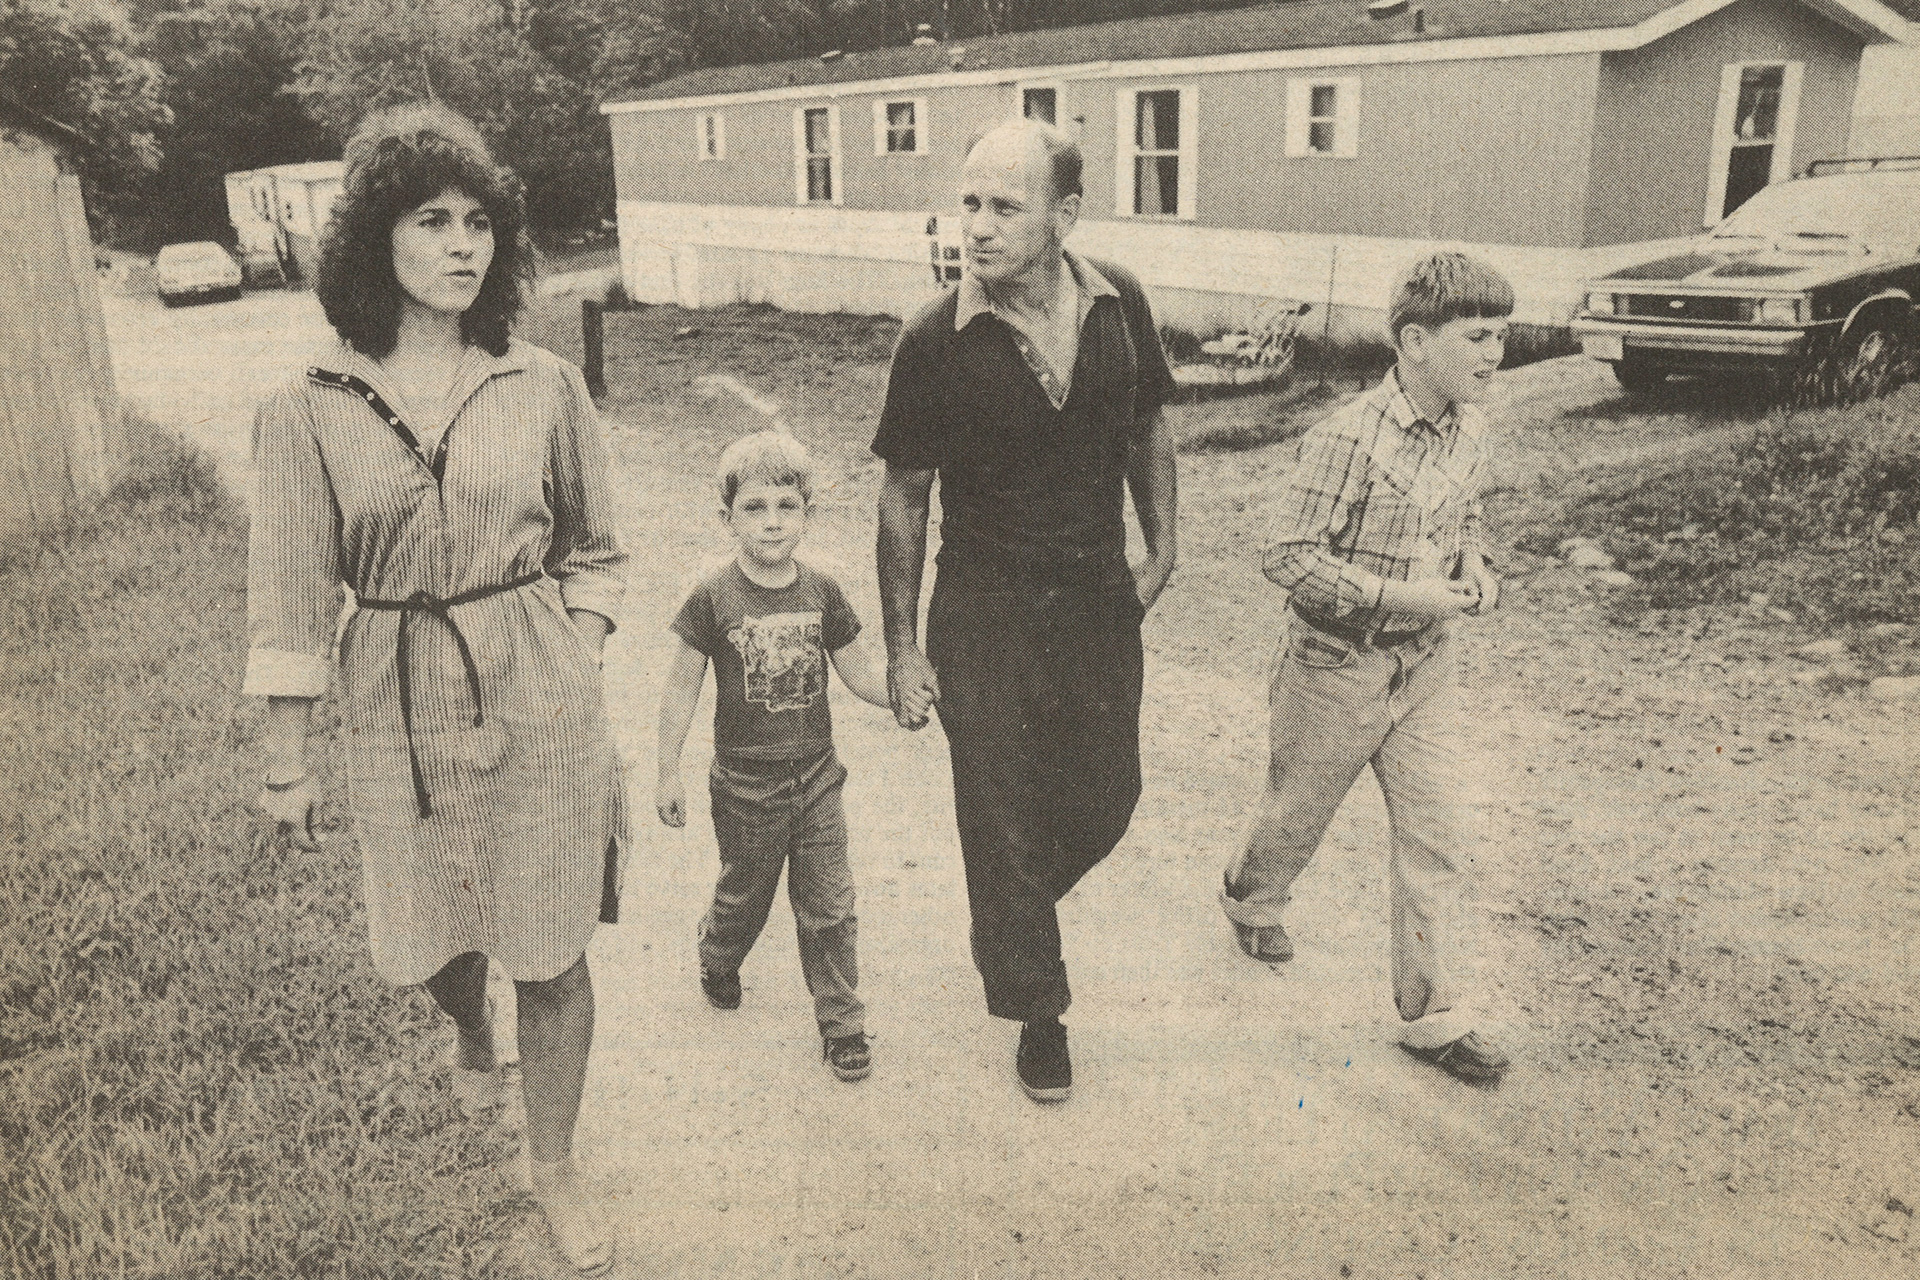 Black and white newspaper photo of a woman walking on gravel street with a man and two young boys